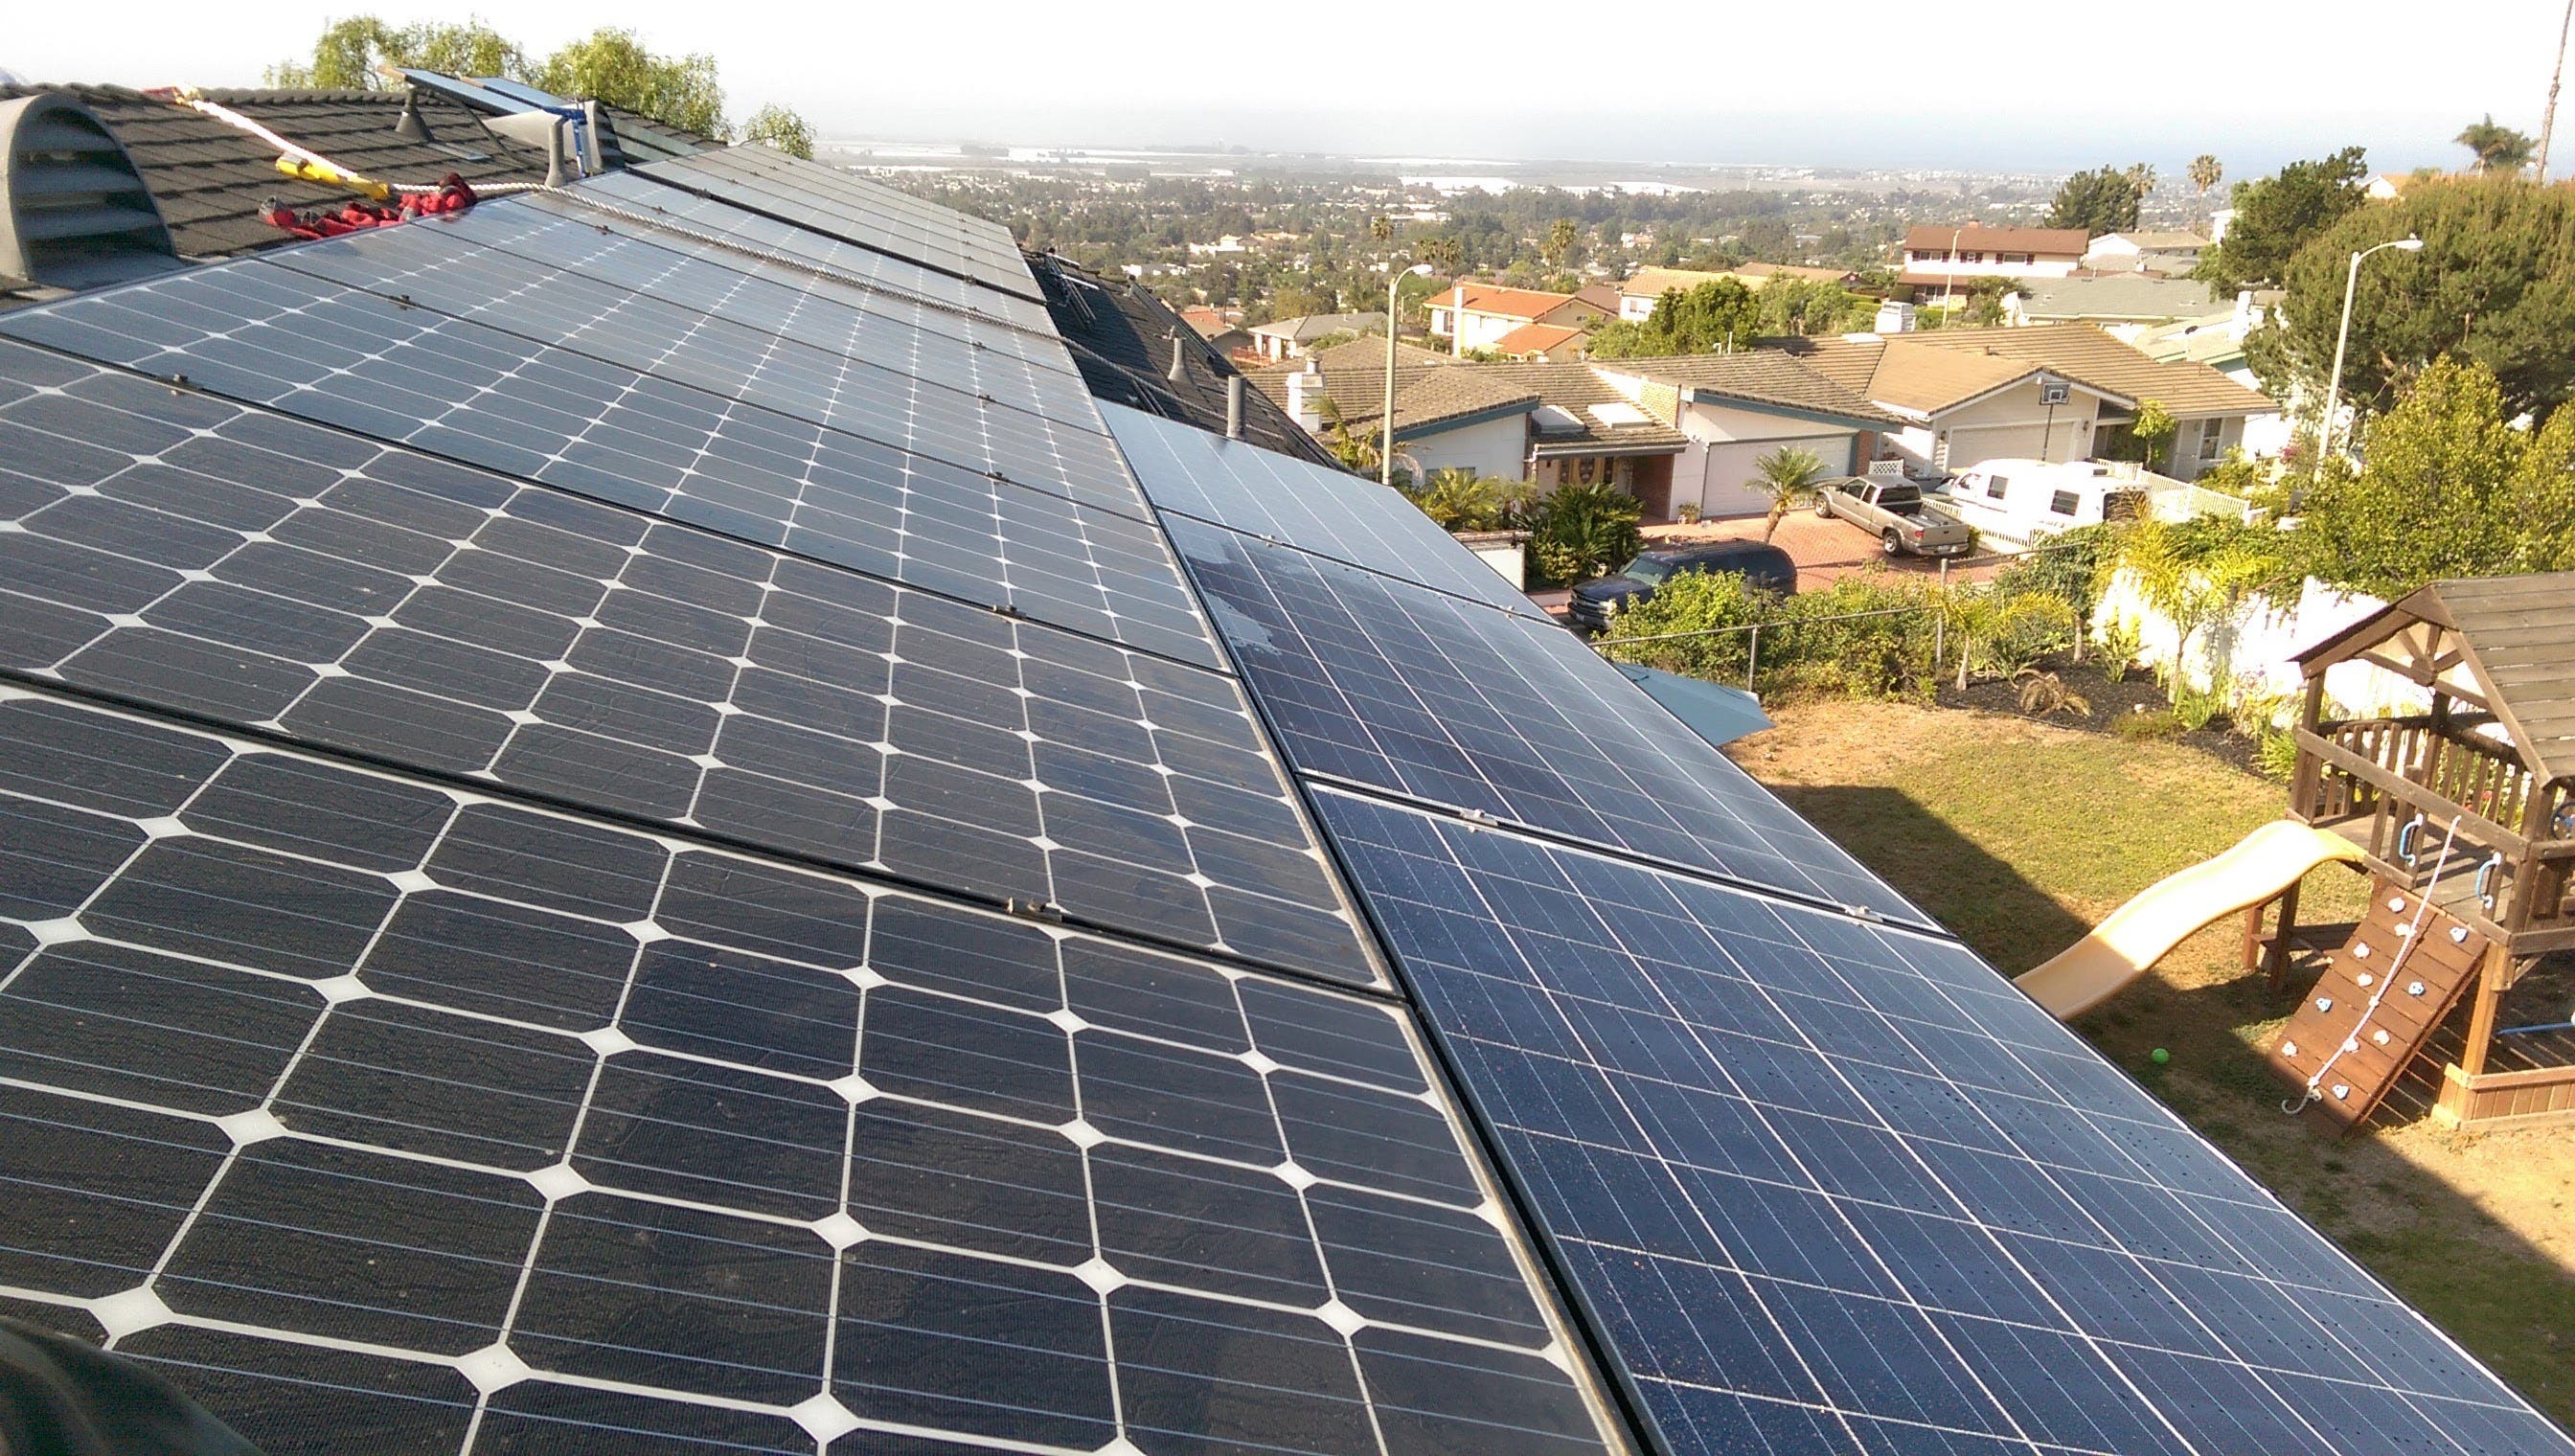 REC Solar and Sunrun solar rooftop system on California home.